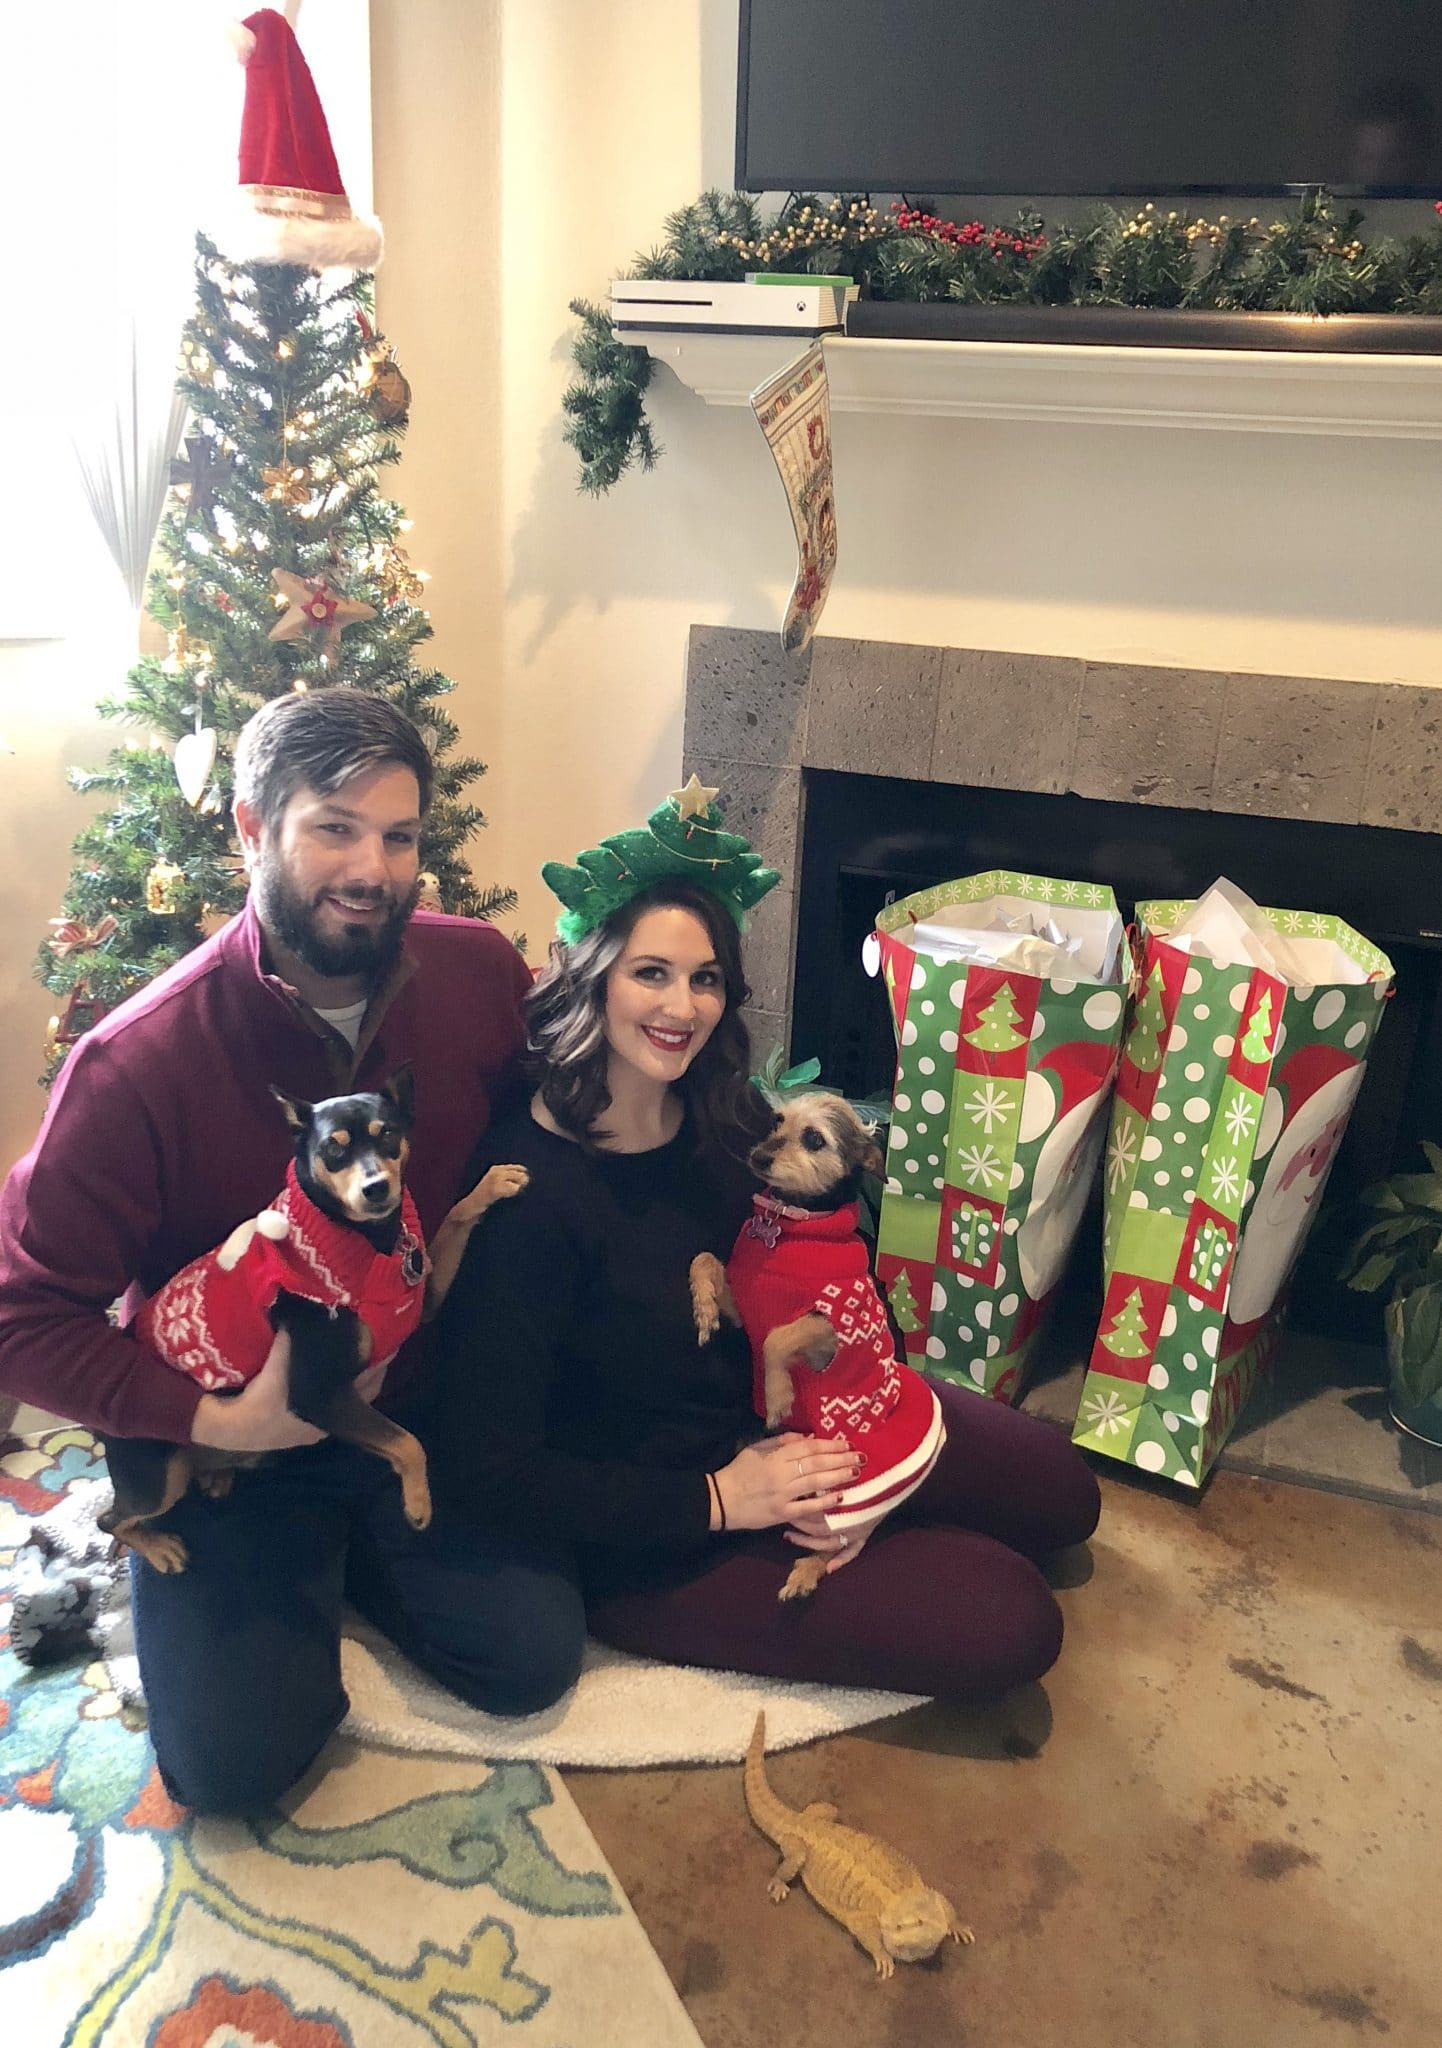 Family photo with Gambit on Christmas Day